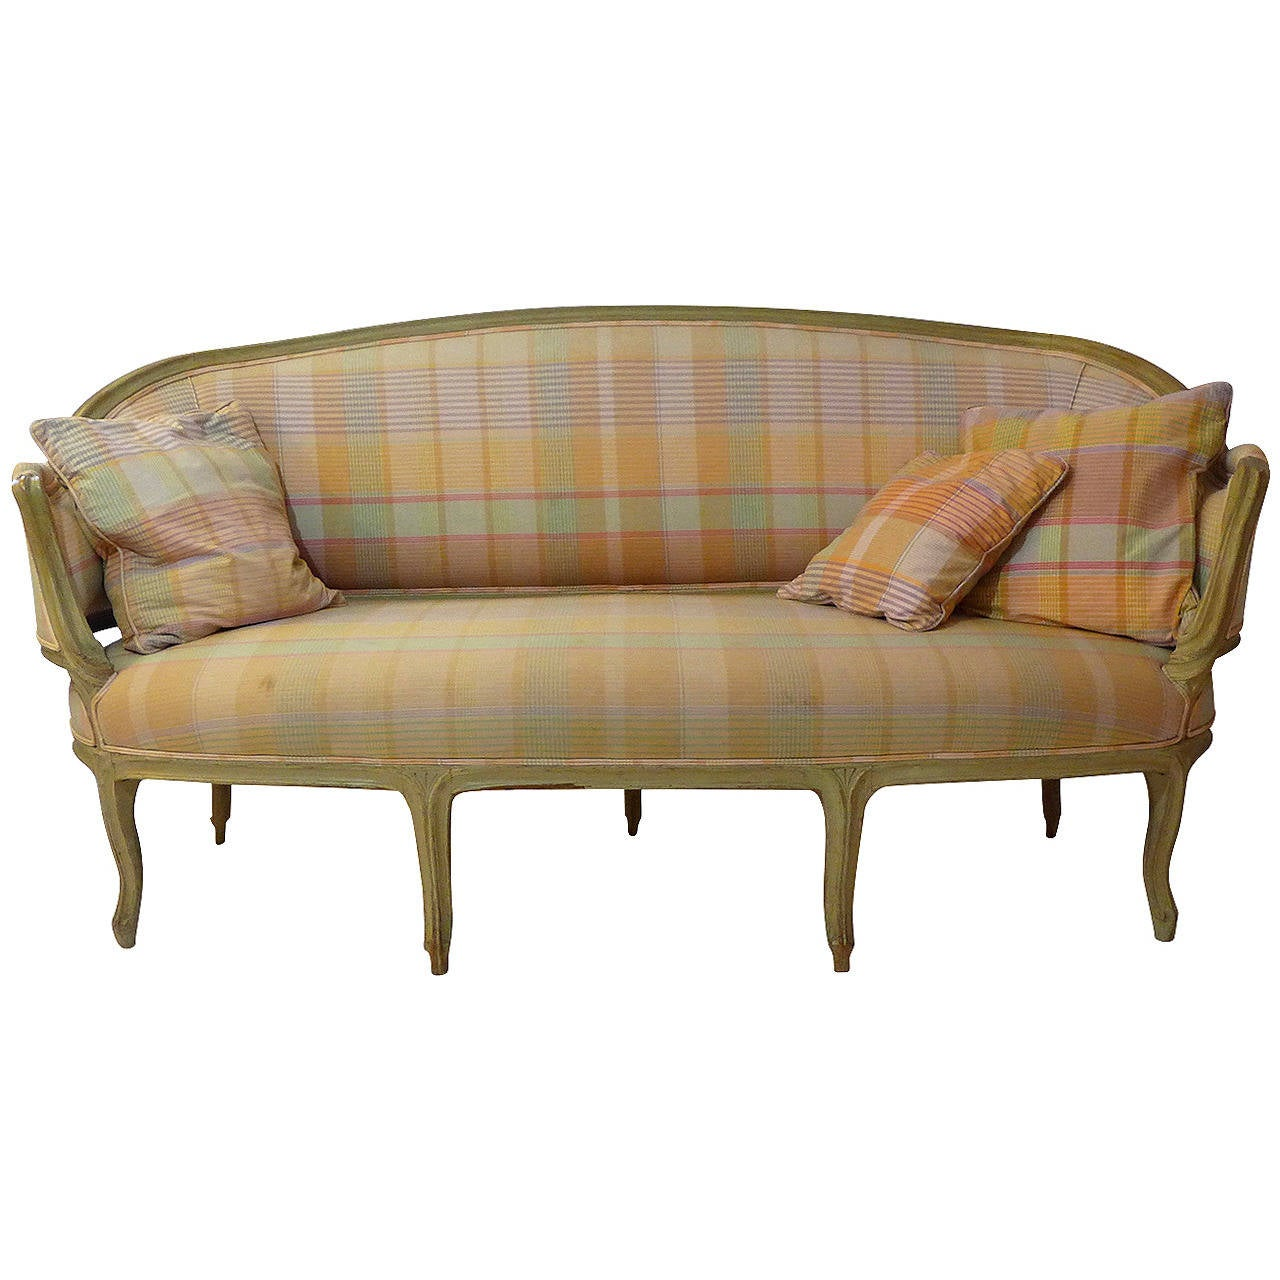 A french 19th century louis xv canape at 1stdibs for Canape louis 15